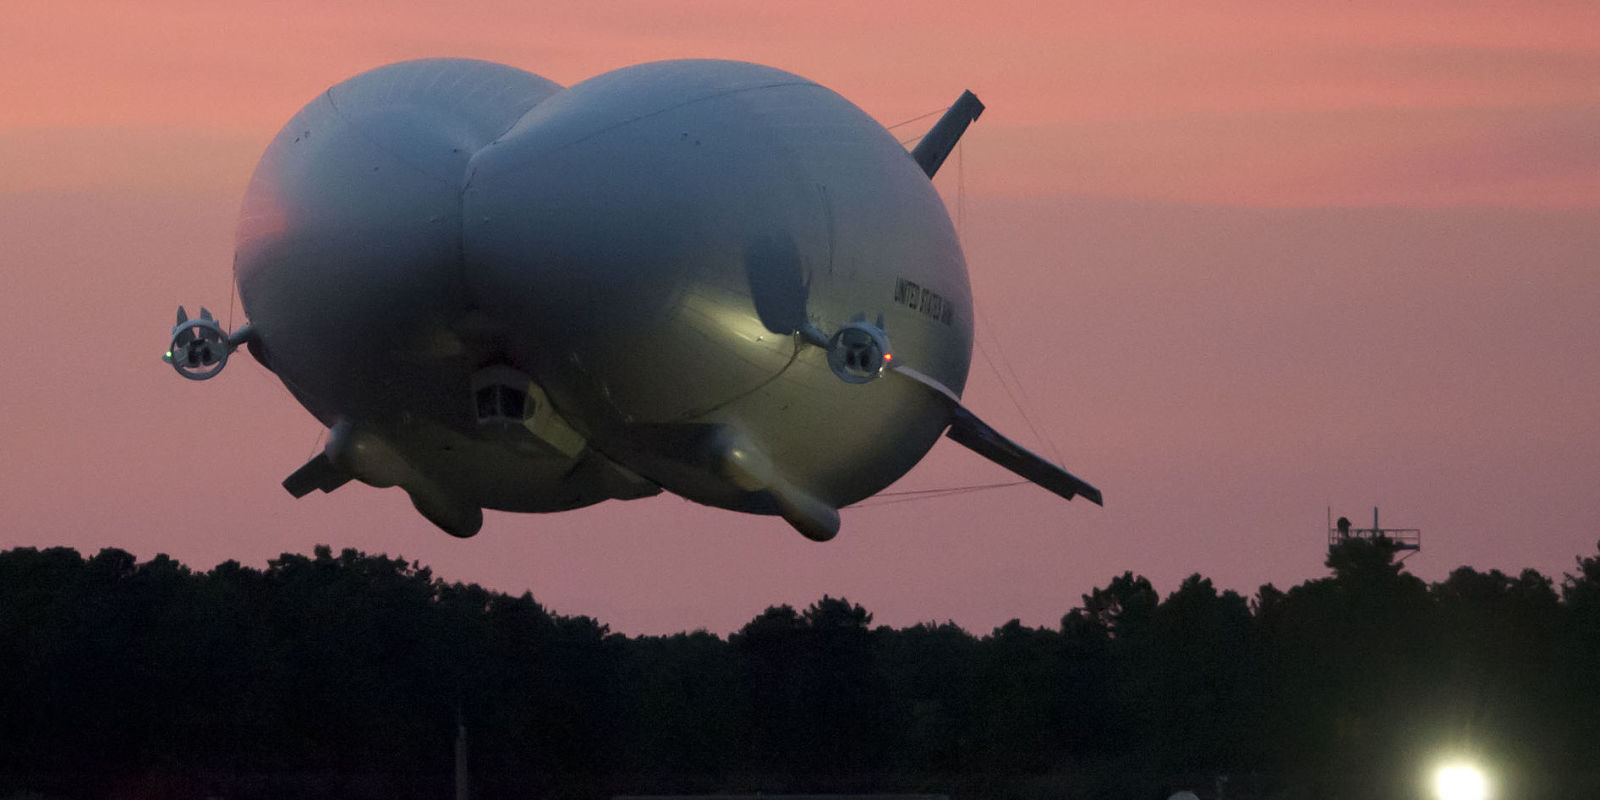 The World S Largest Airship May Soon Fly Once More